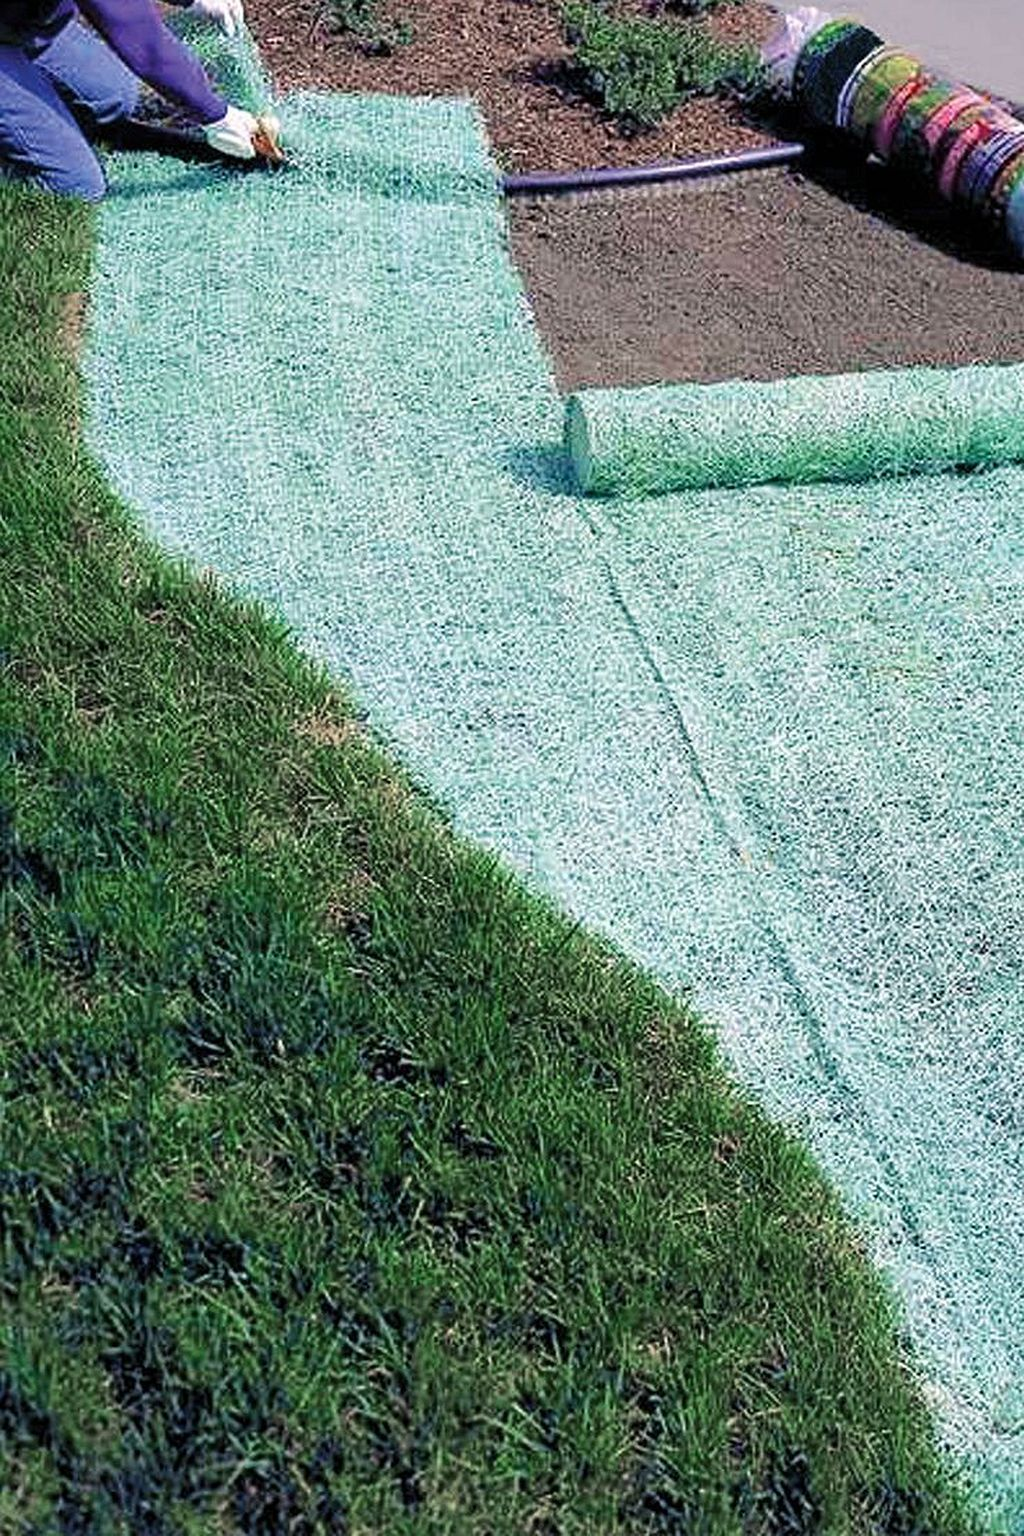 how to make grass green again